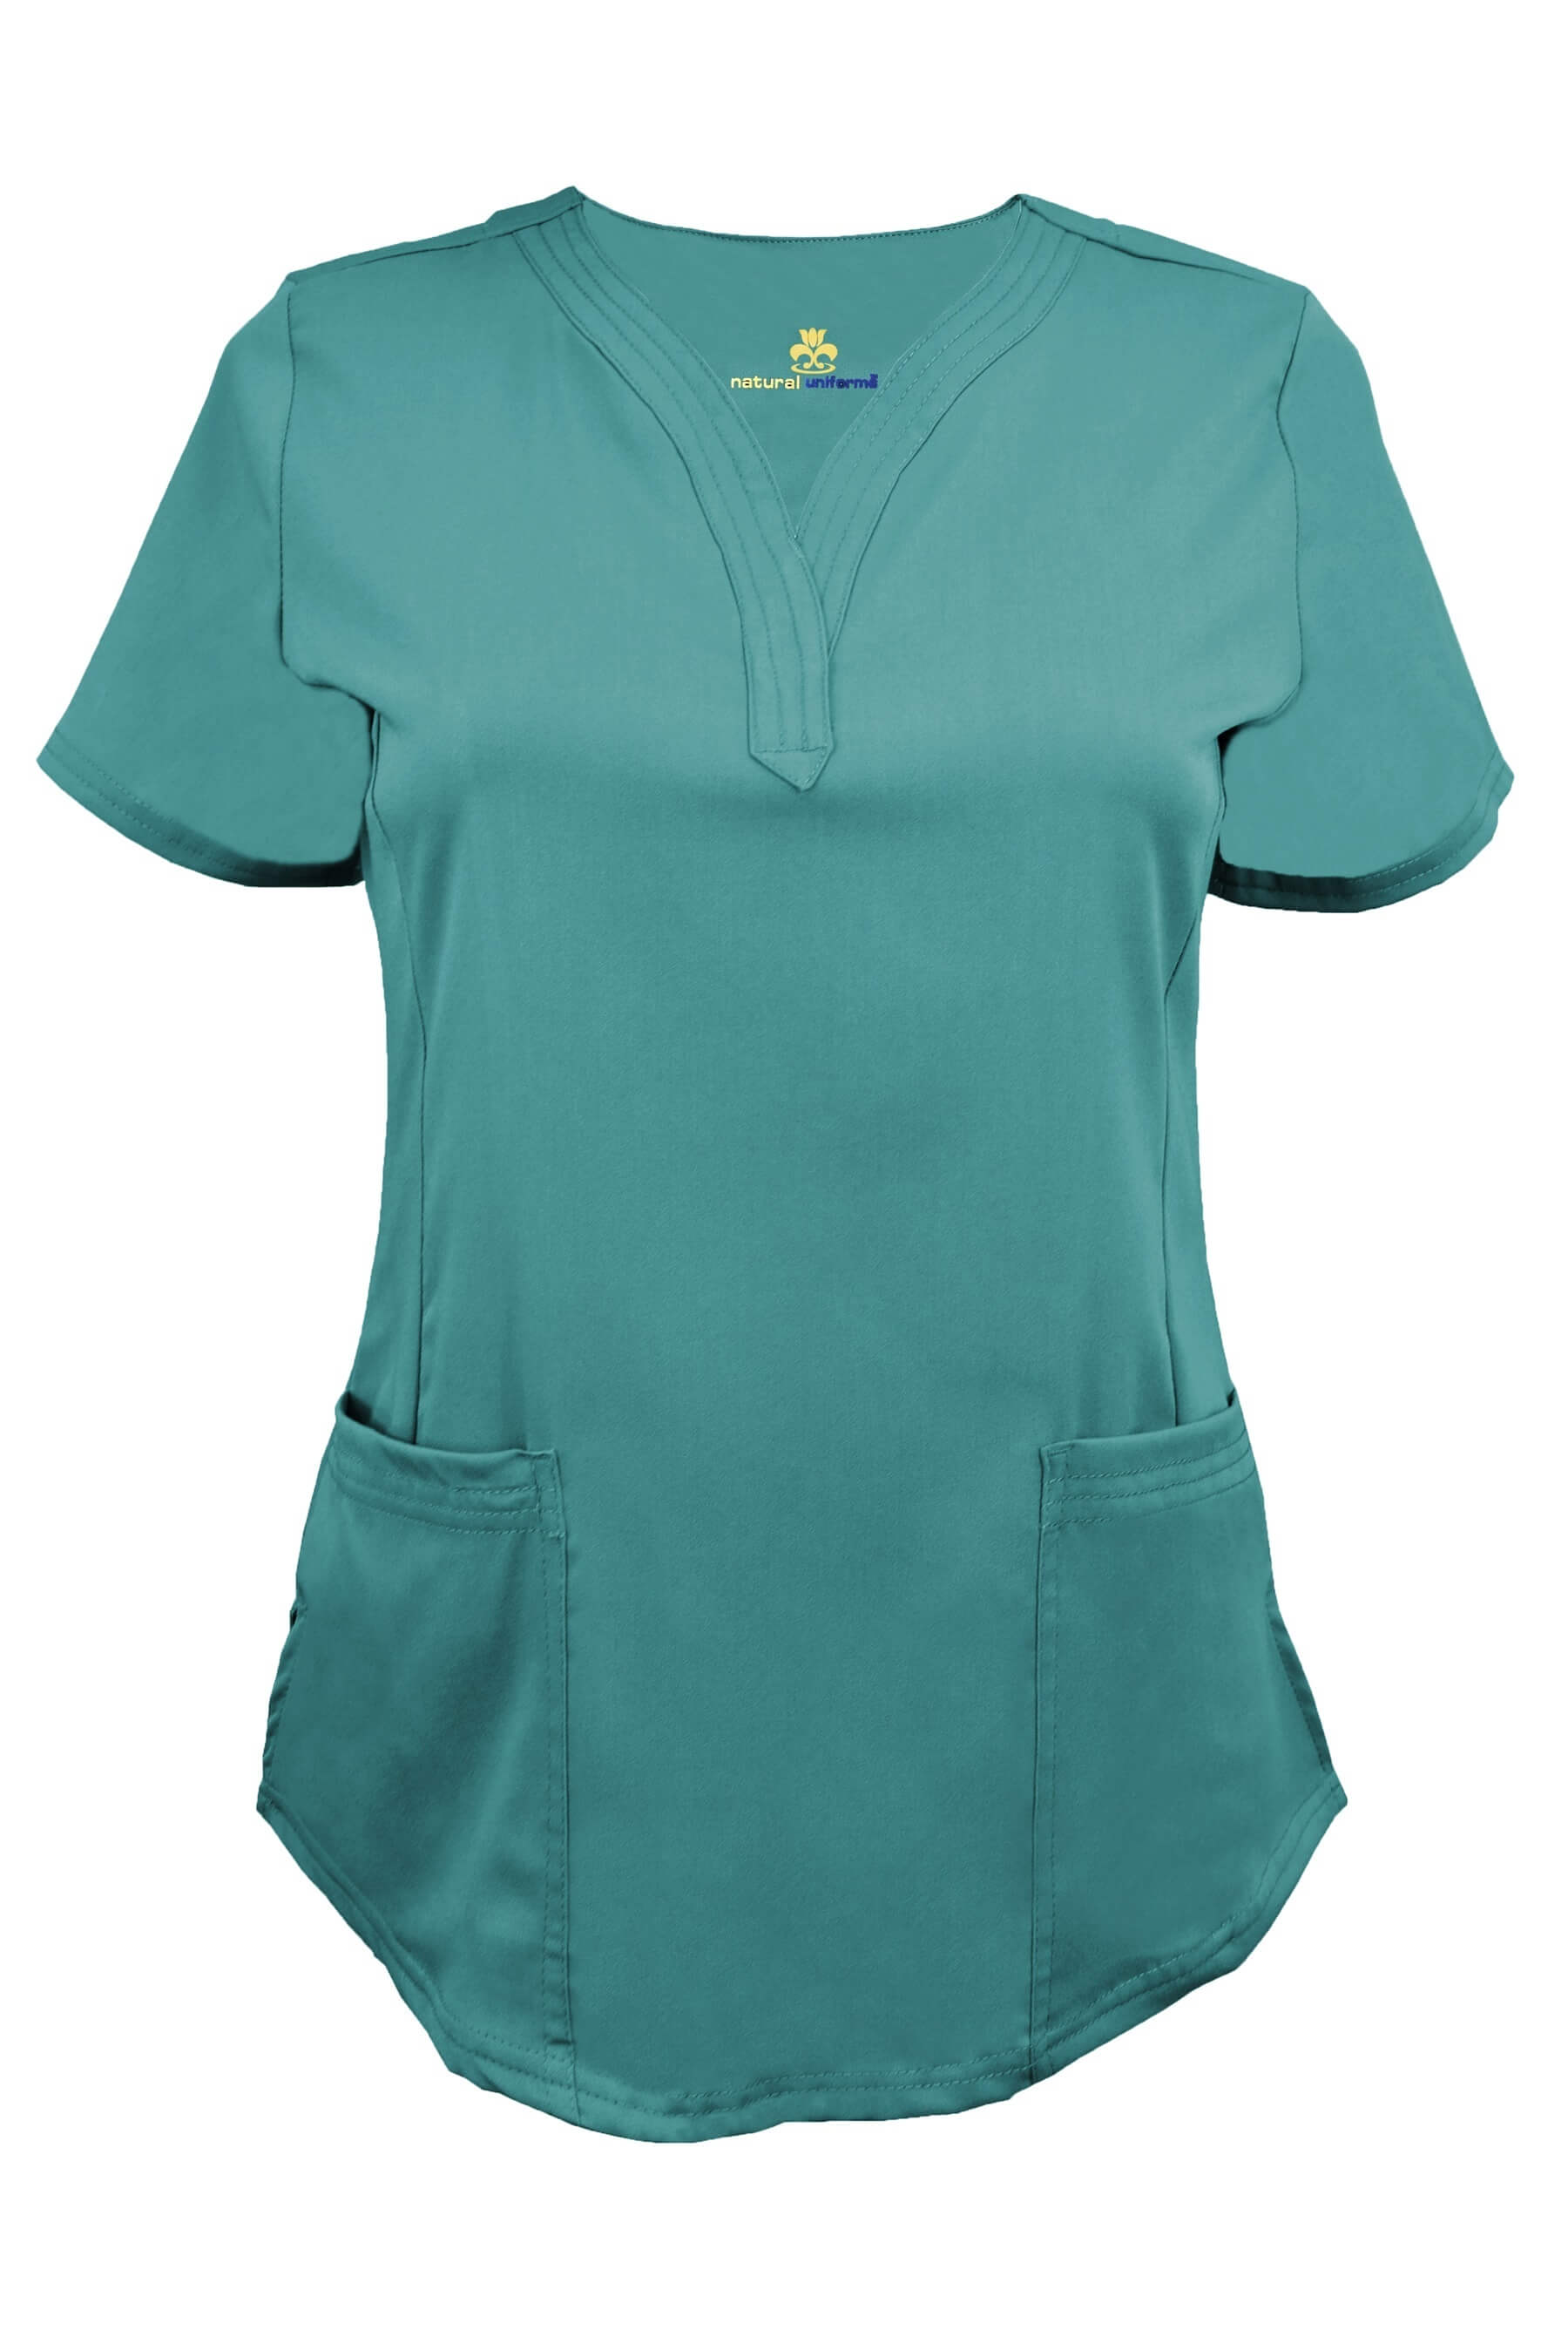 Ultrasoft Stretch Drop Neck 2 Pocket Scrub Top Style